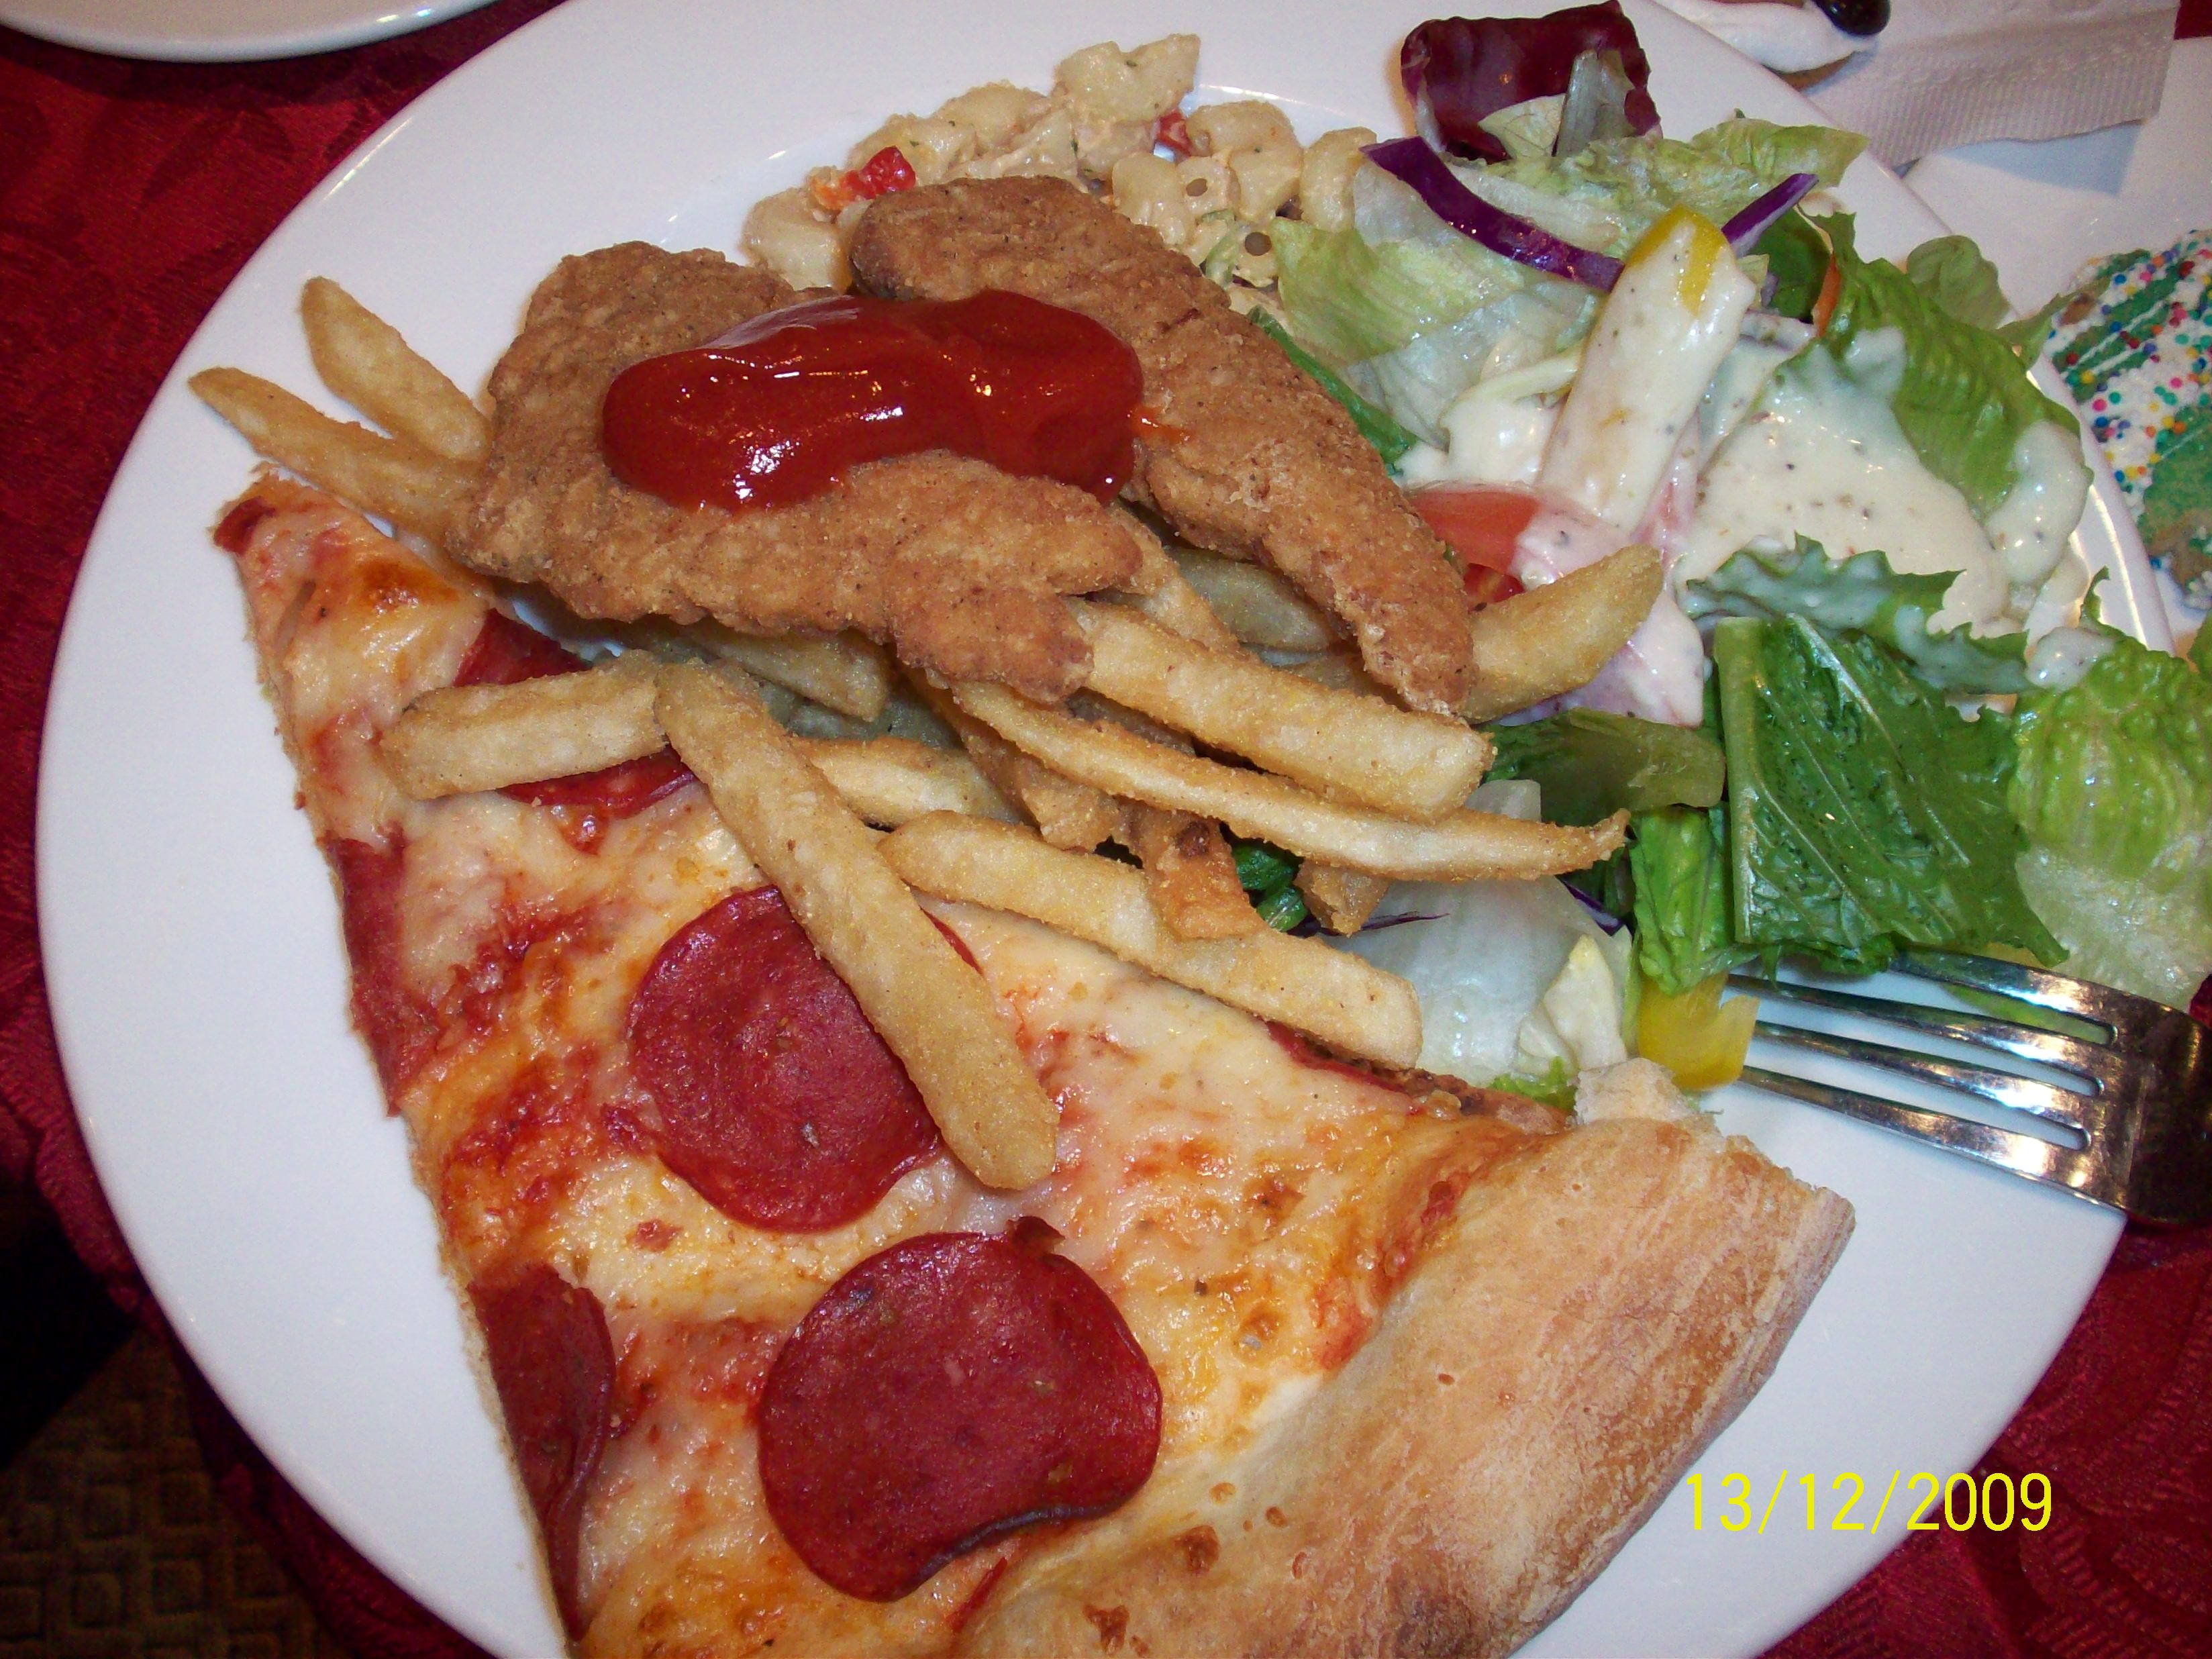 https://foodloader.net/cutie_2009-12-13_Pizza__Salad_and_Chicken_Strips.jpg